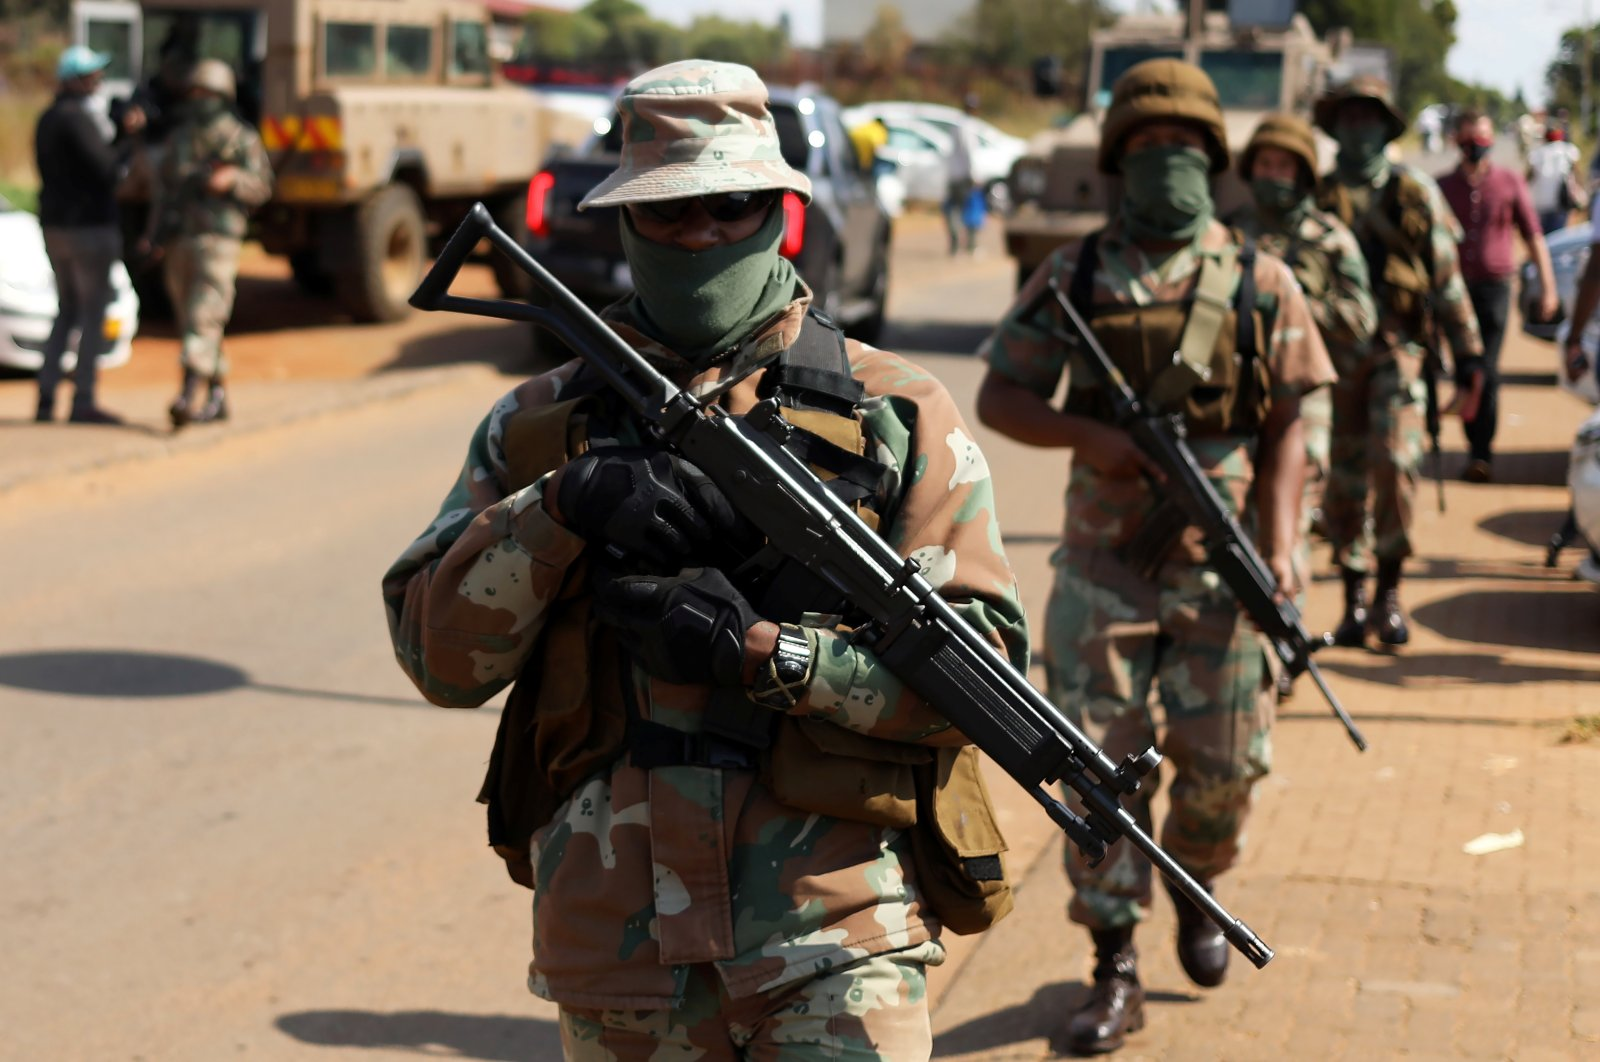 Members of the military patrol during a nationwide lockdown aimed at limiting the spread of the coronavirus, in Soweto, South Africa, April 23, 2020. (Reuters Photo)